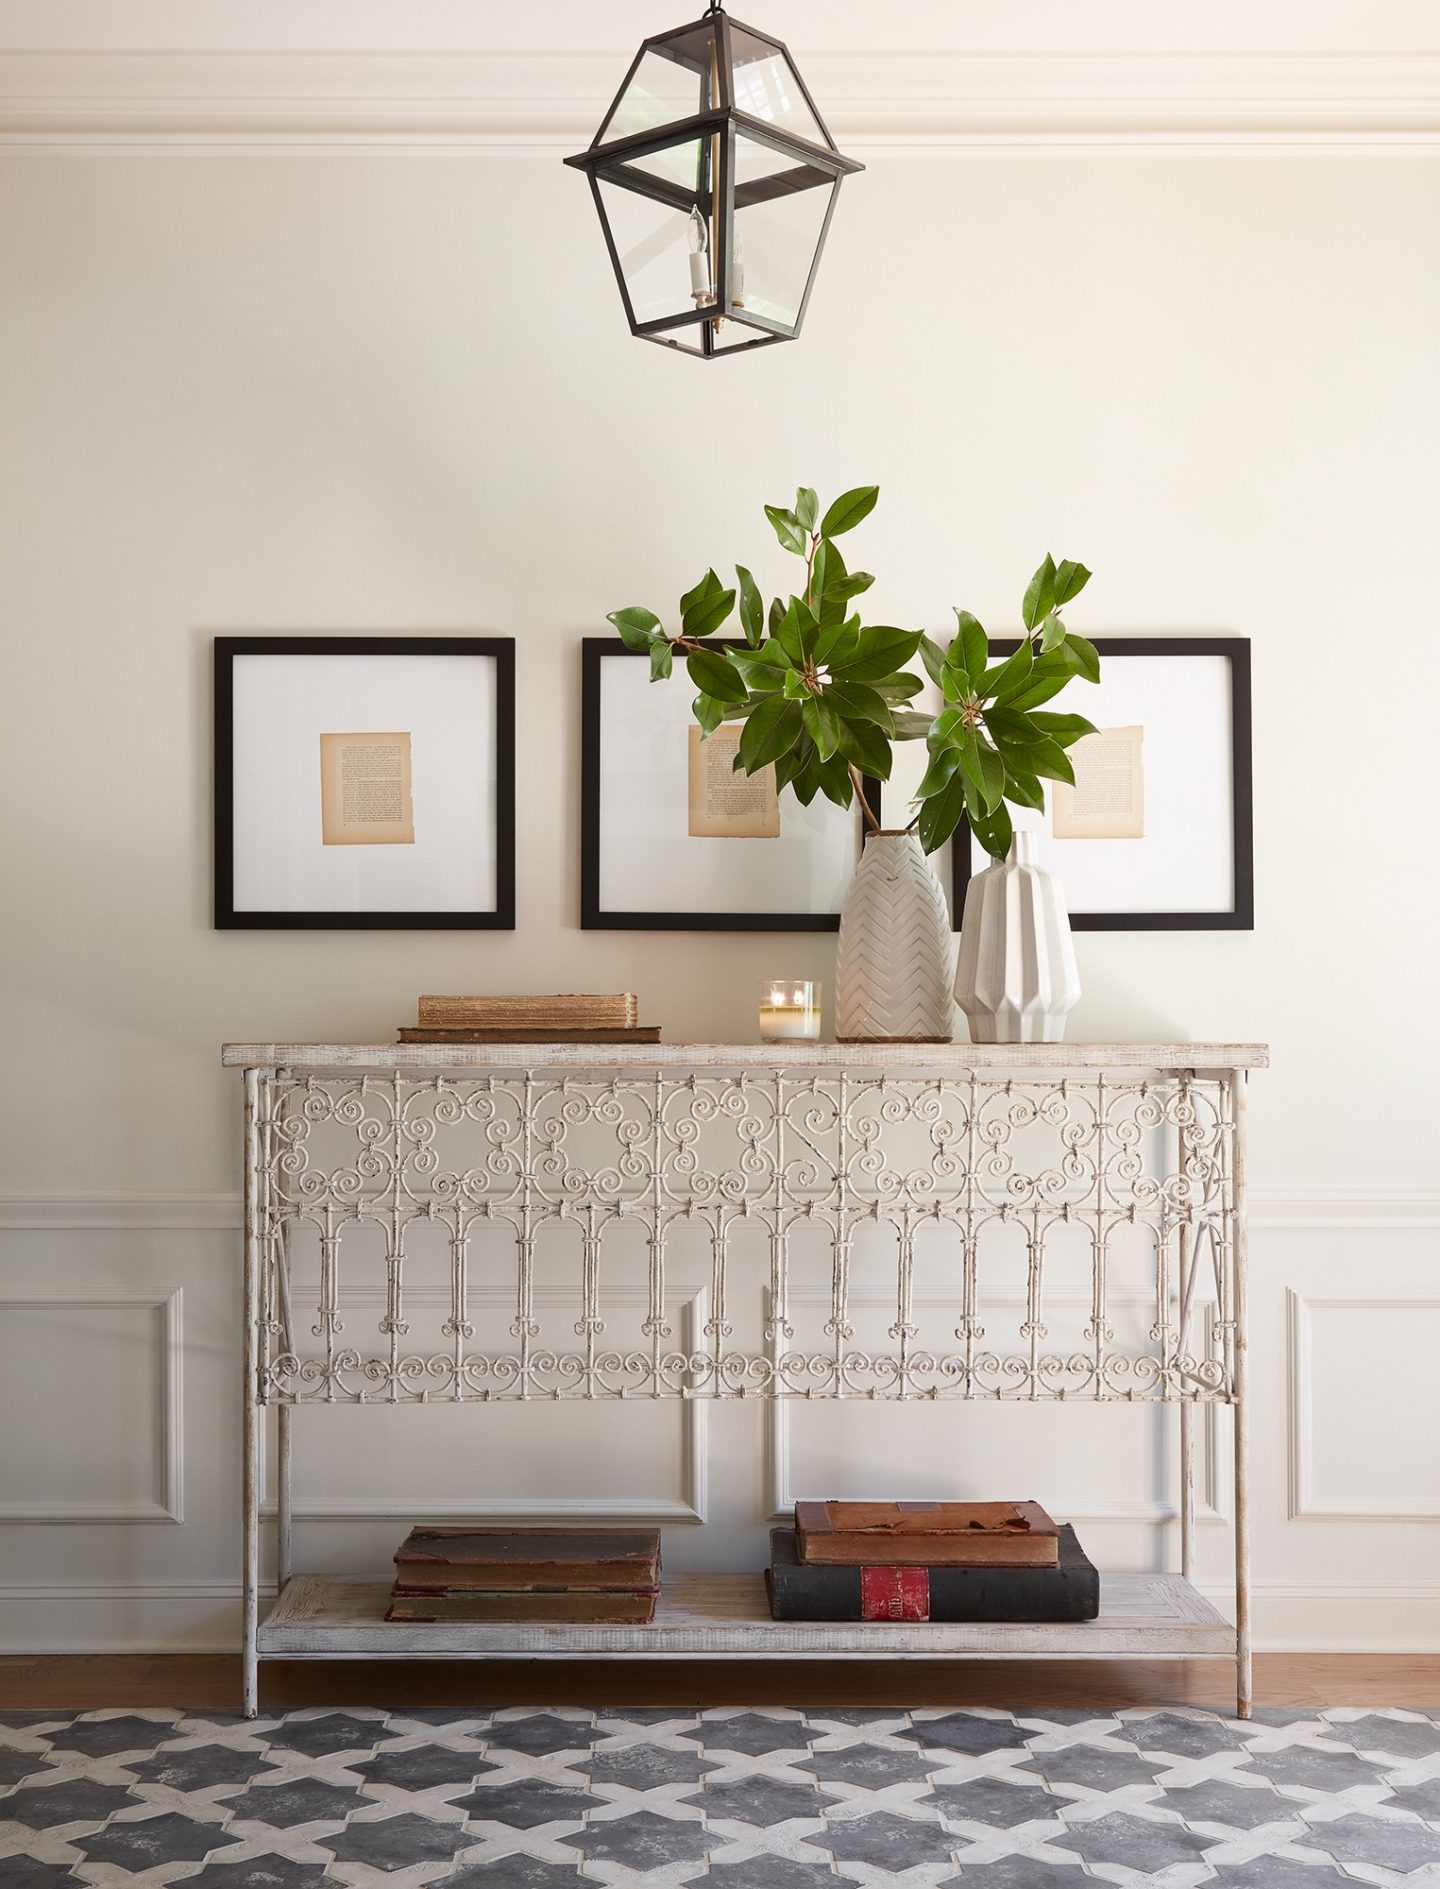 Gorgeous entryway in HGTV Fixer Upper's THE CLUB HOUSE episode! A vintage metal console table with delicate scrolling and encaustic tile rug in the white oak flooring. #fixerupper #theclubhouse #entryway #frenchfarmhouse #interiordesign #vintagestyle #consoletable